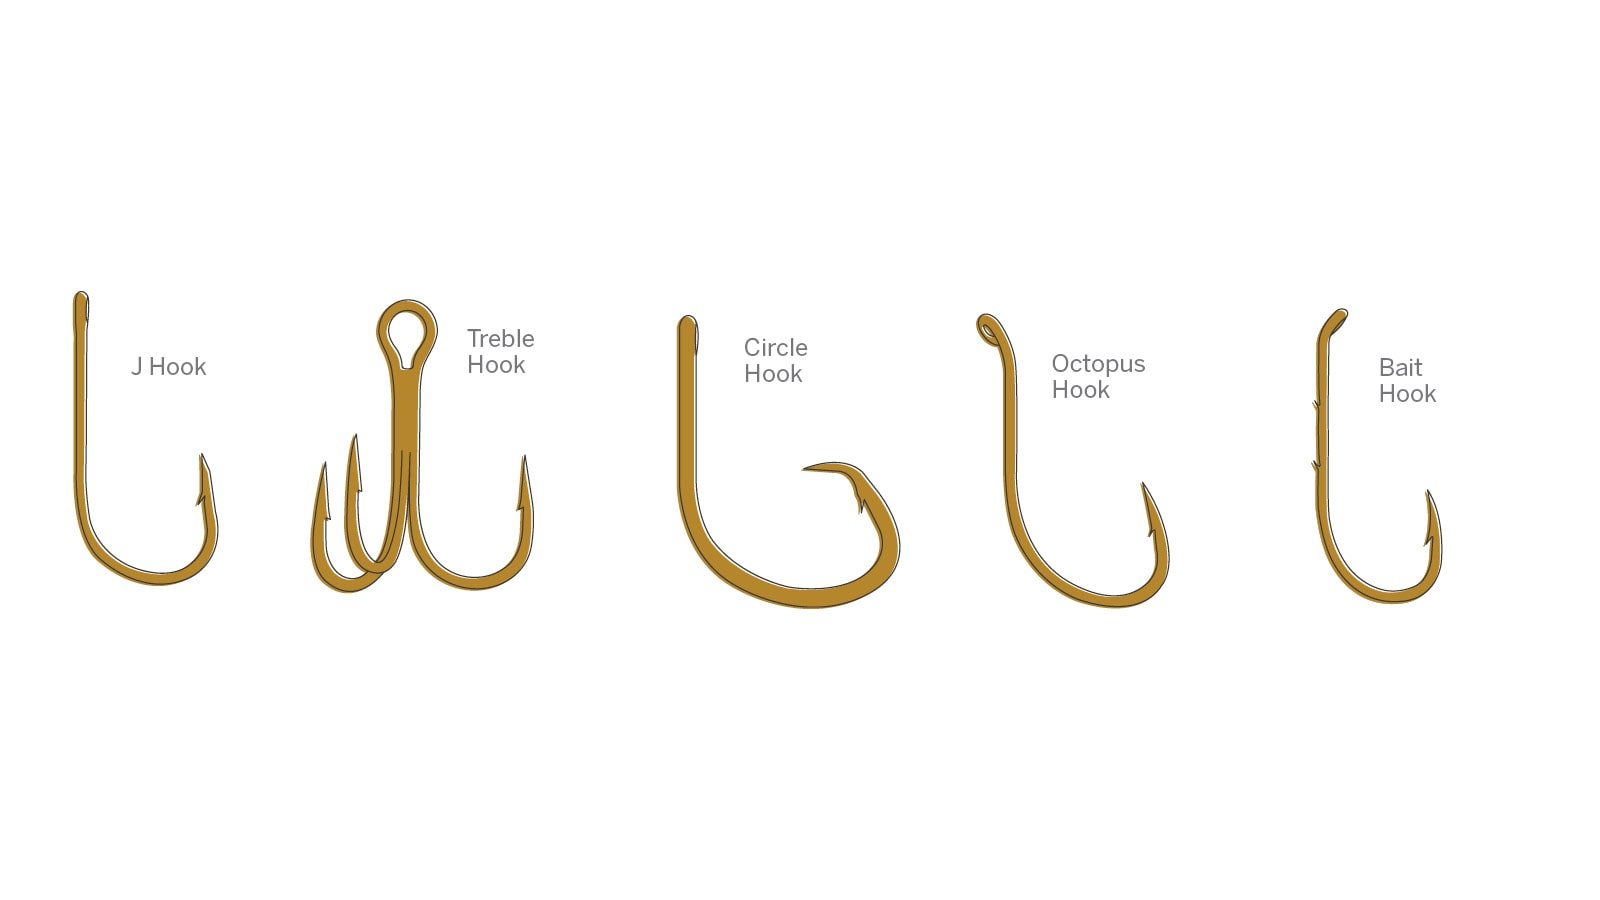 An illustration of five different types of fishhooks.